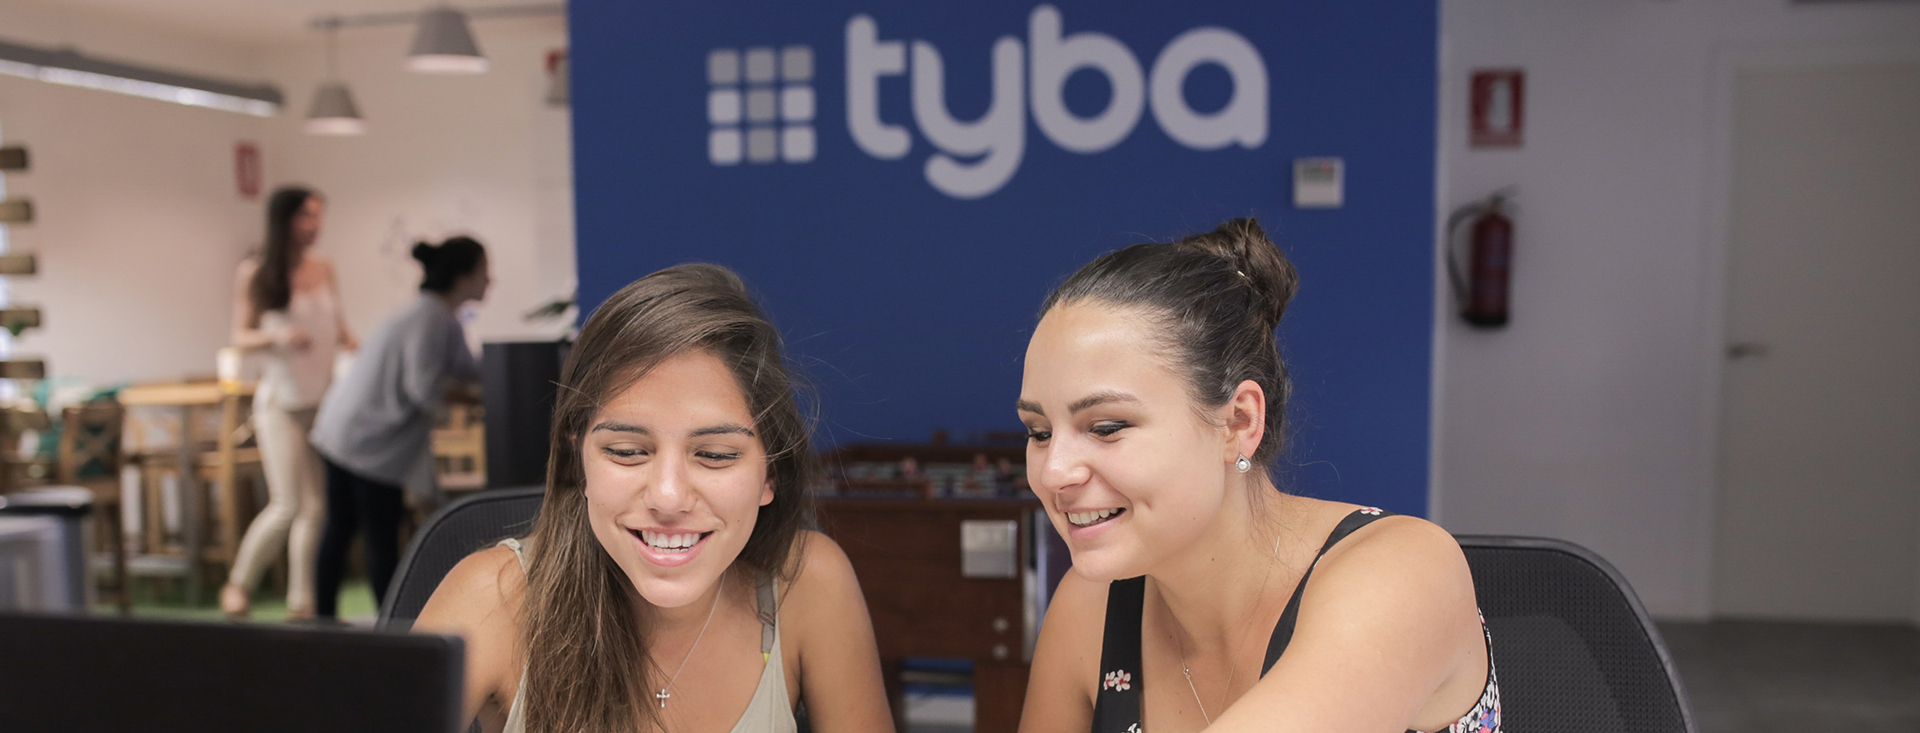 Tyba: a Fresh Take on Startup Recruitment in Europe